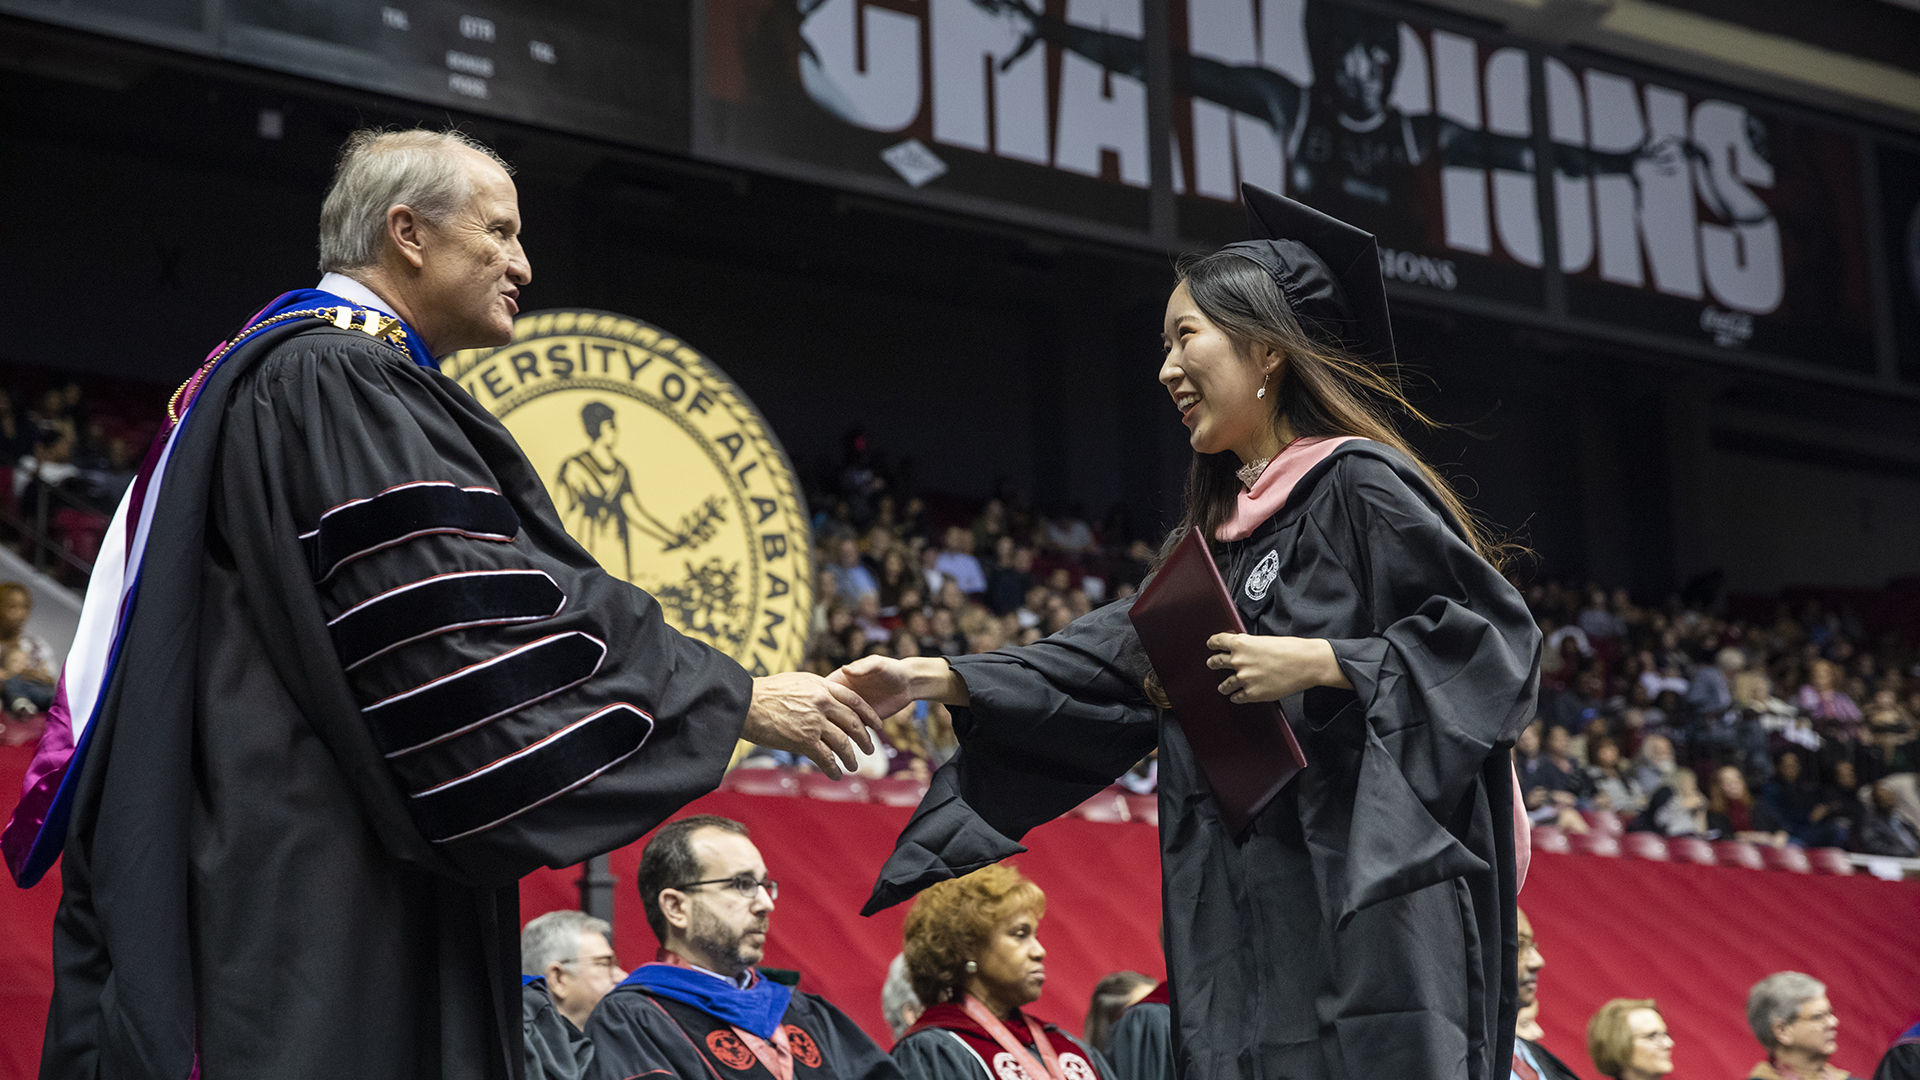 A graduate shakes Dr. Bell's hand.